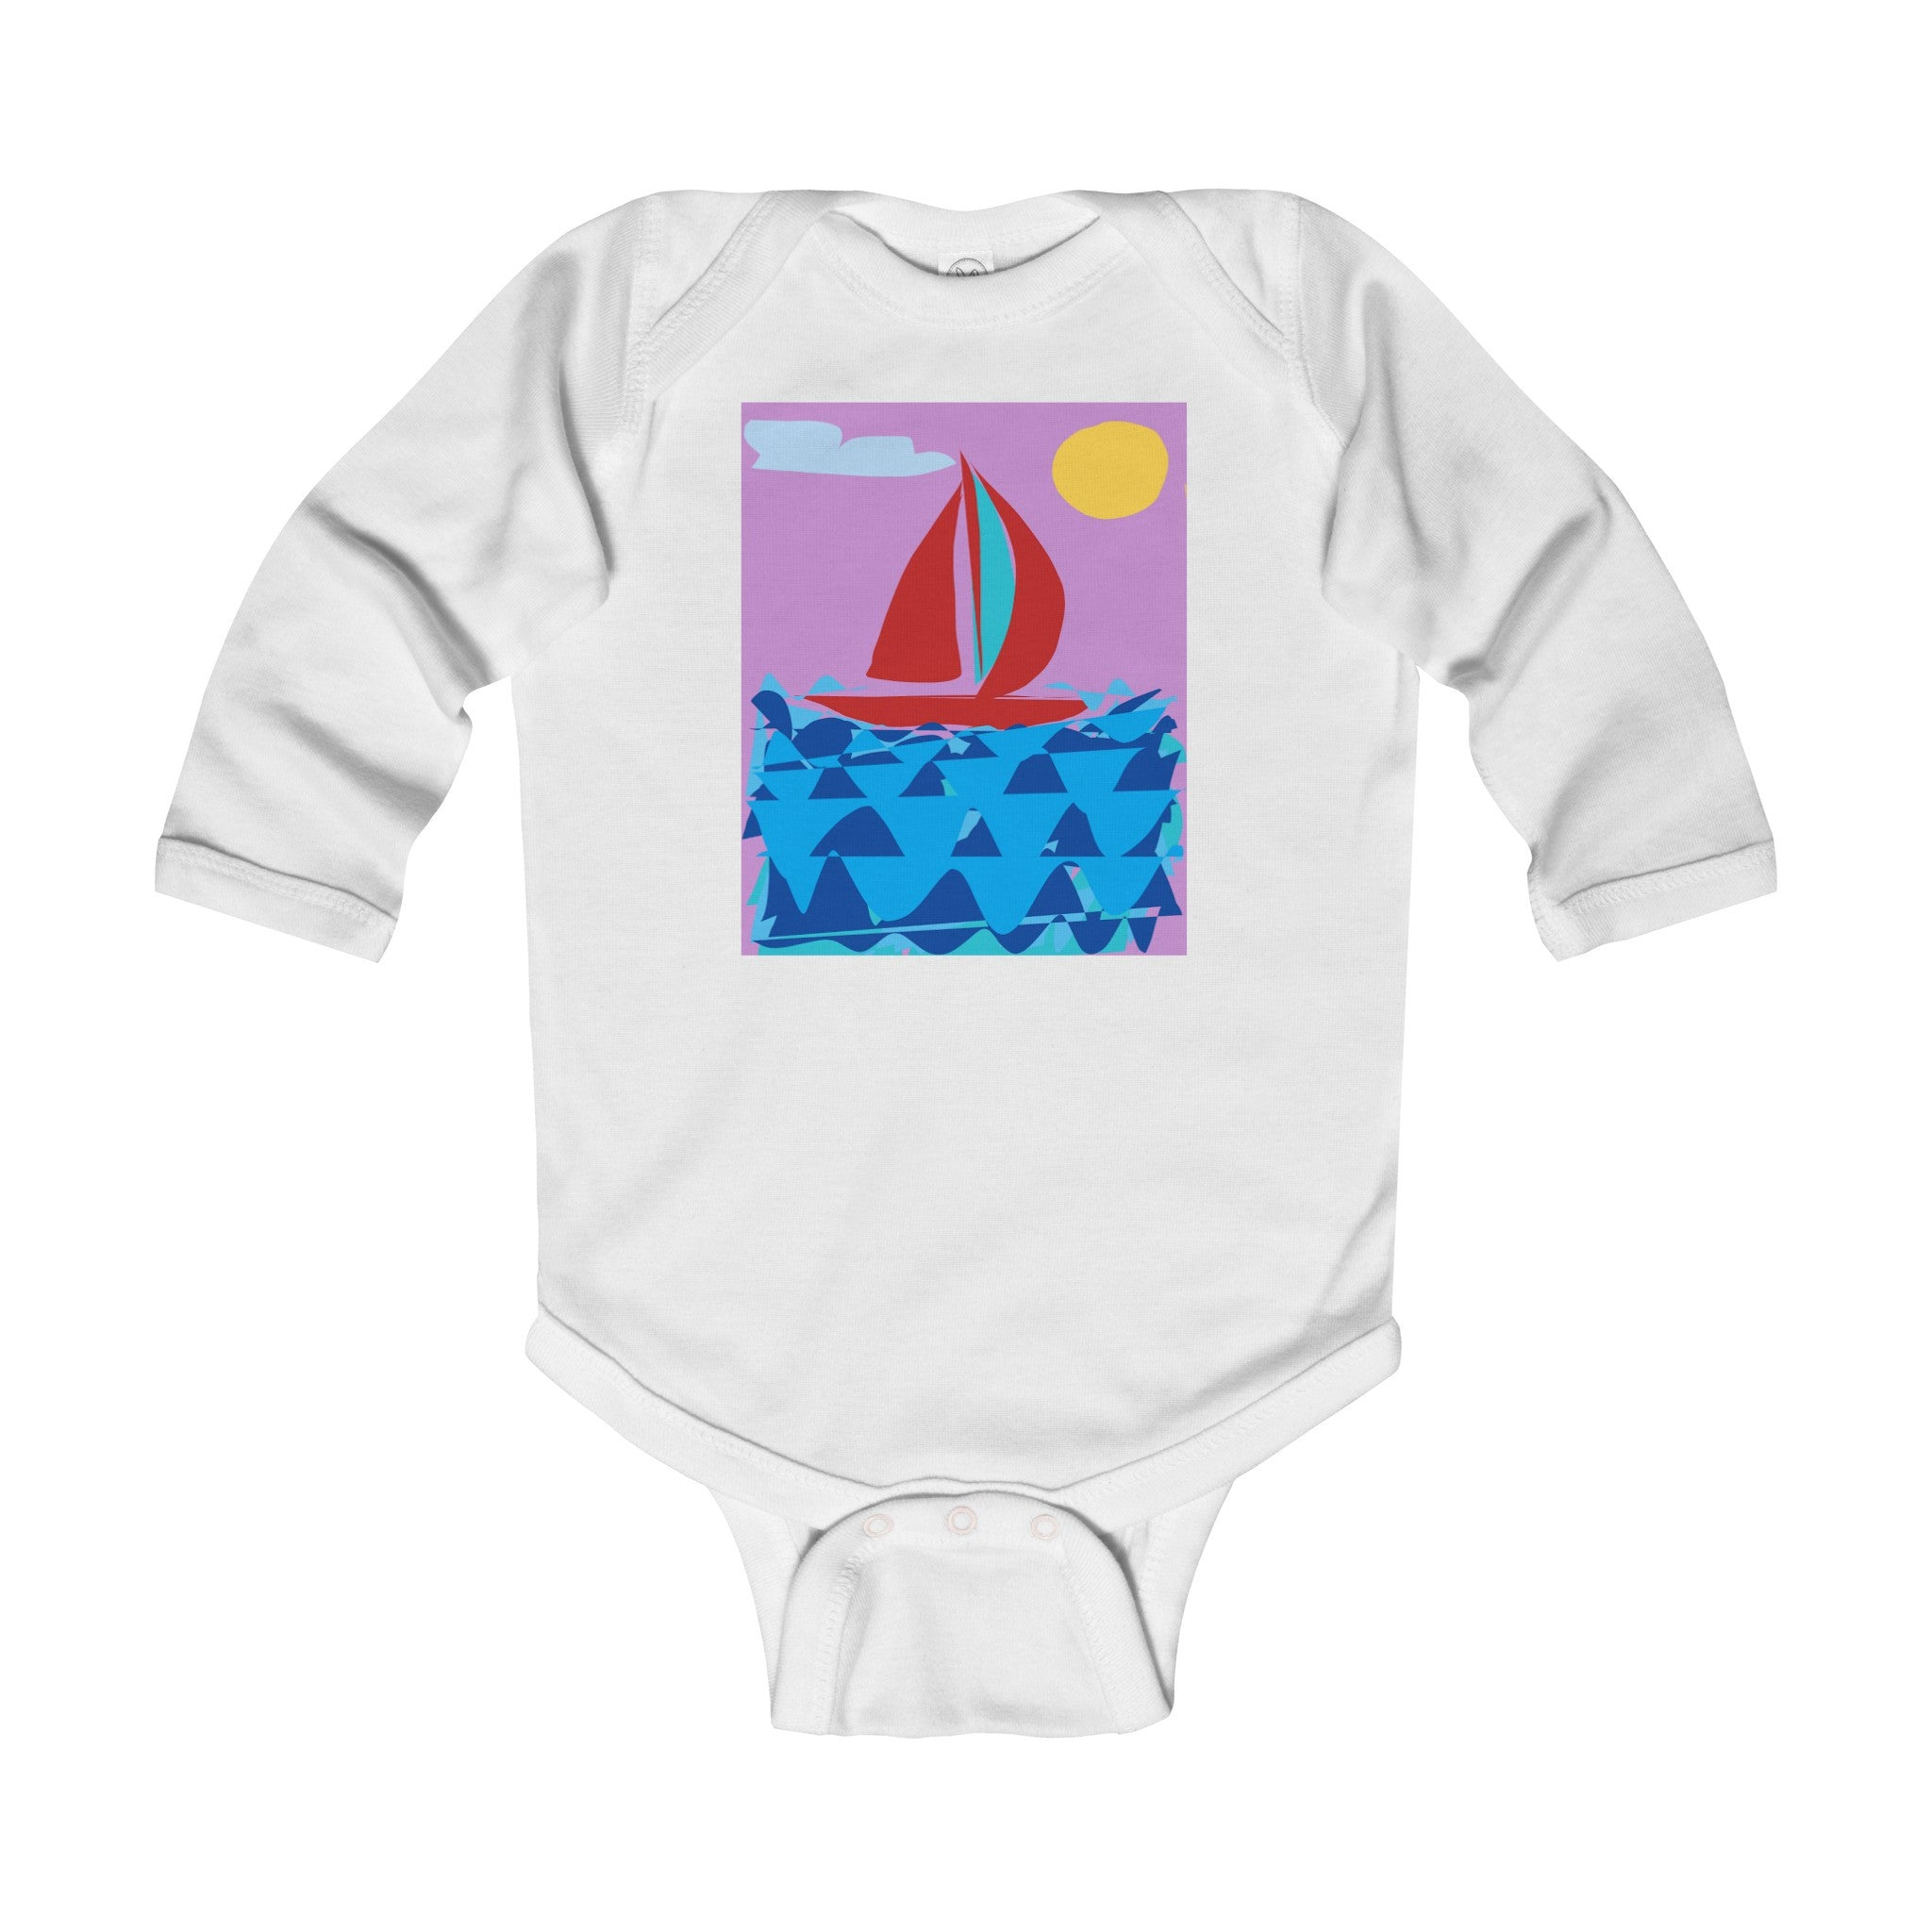 Infant Long Sleeve Bodysuit-Kids clothes-Printify-6-12M-White-Love My Husband Shop